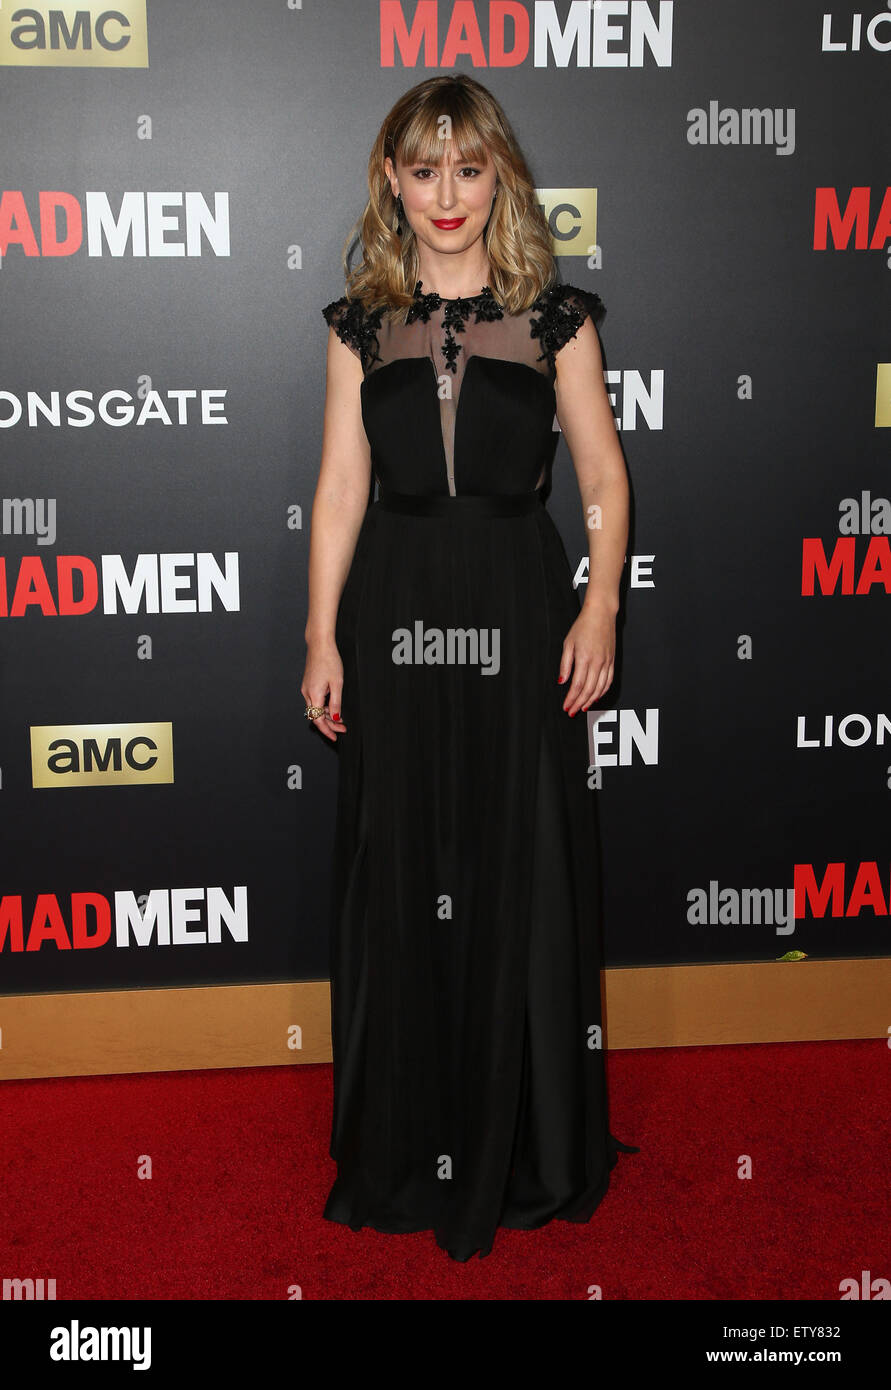 Amc Celebrates The Mad Men 7 Episodes Of Mad Men With The Black